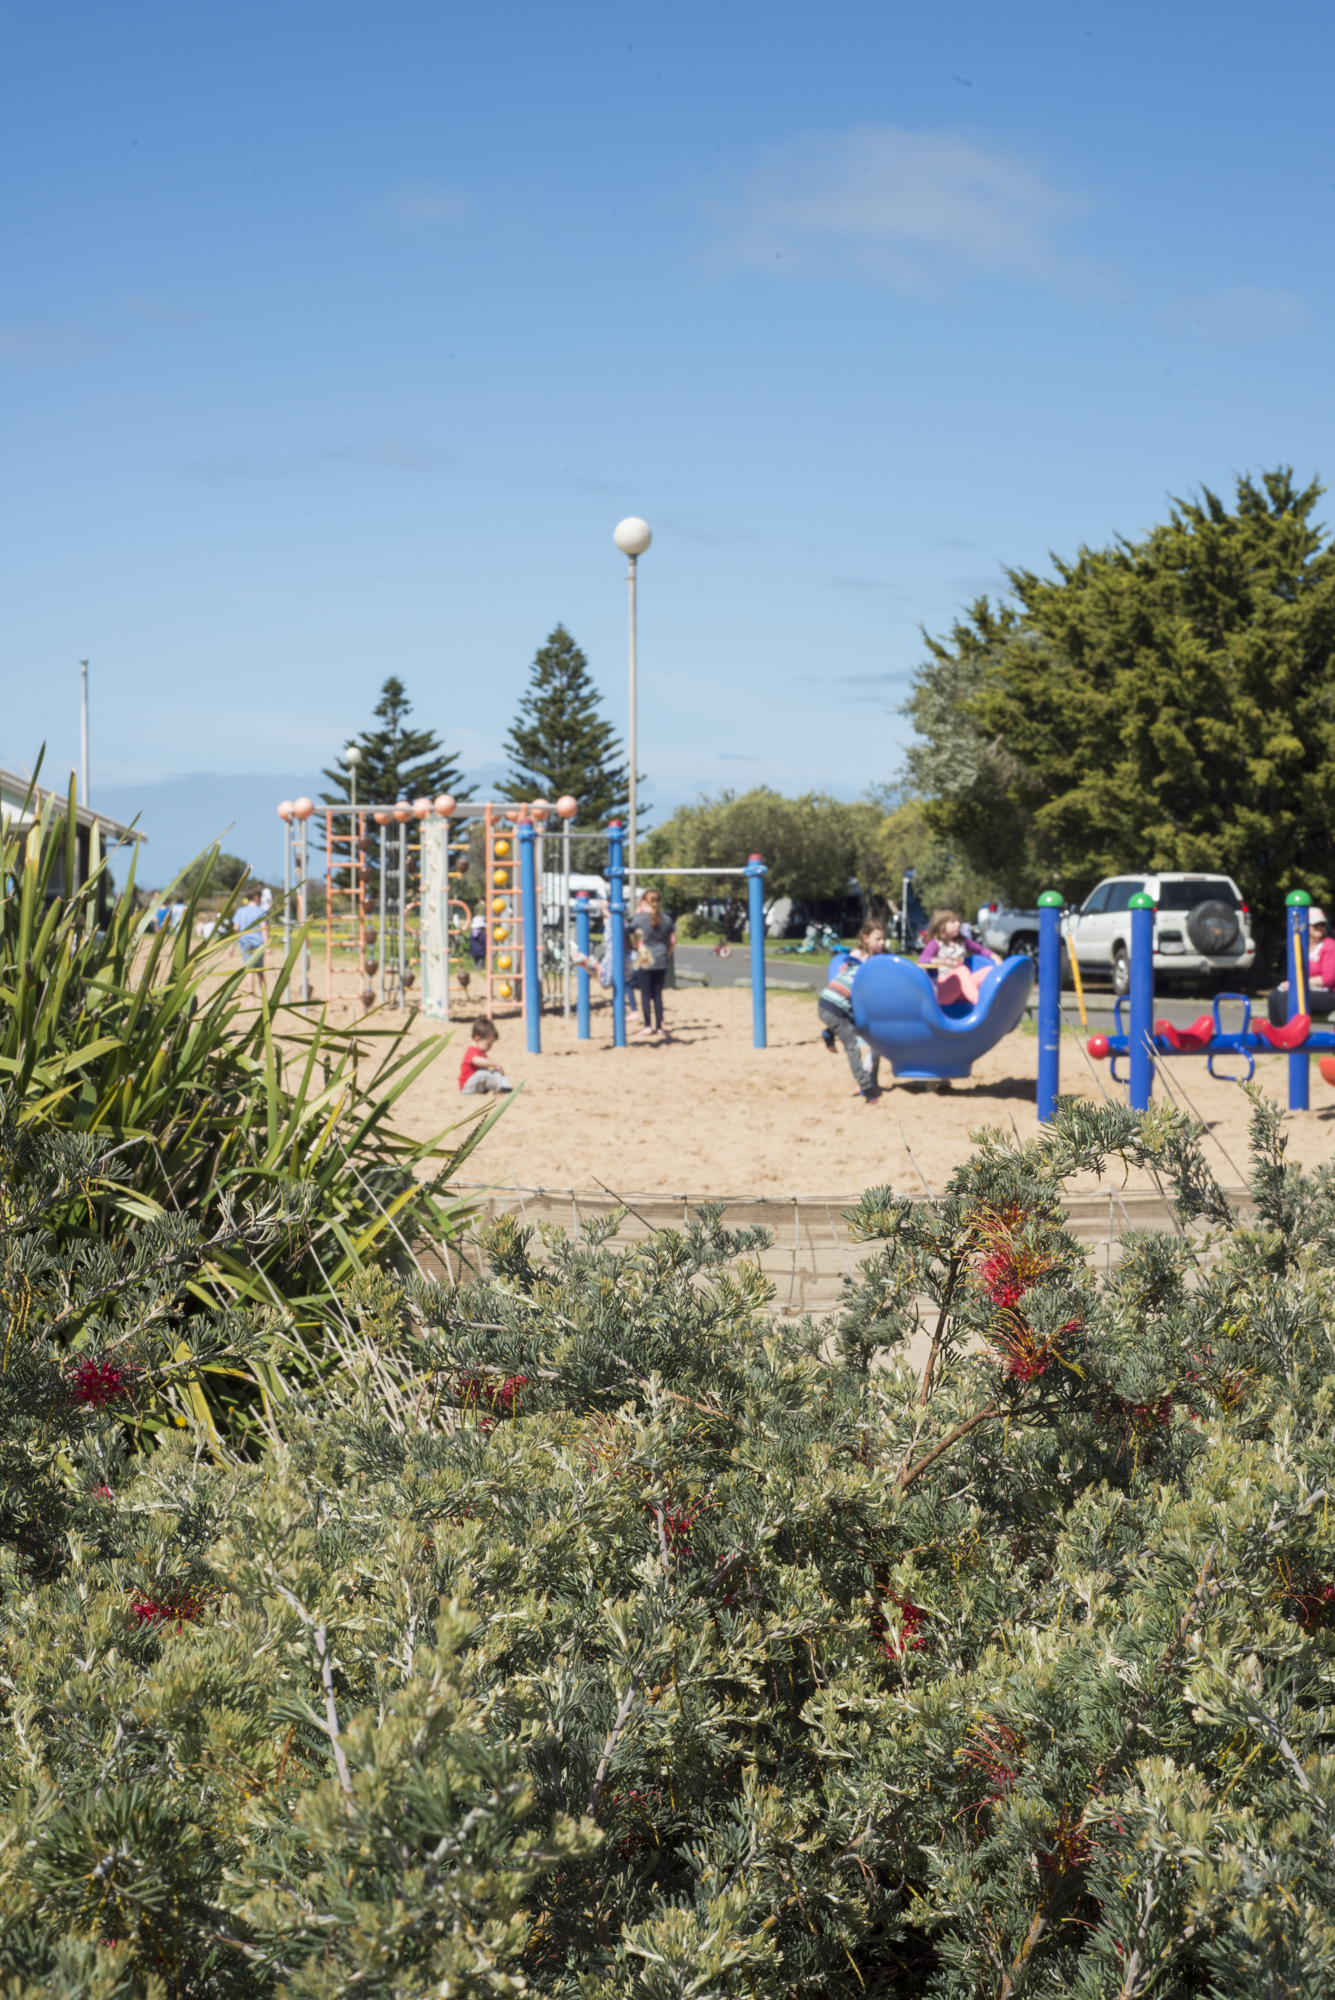 The playground which entertains the kids for most of the day at BIG 4 Port Elliot.